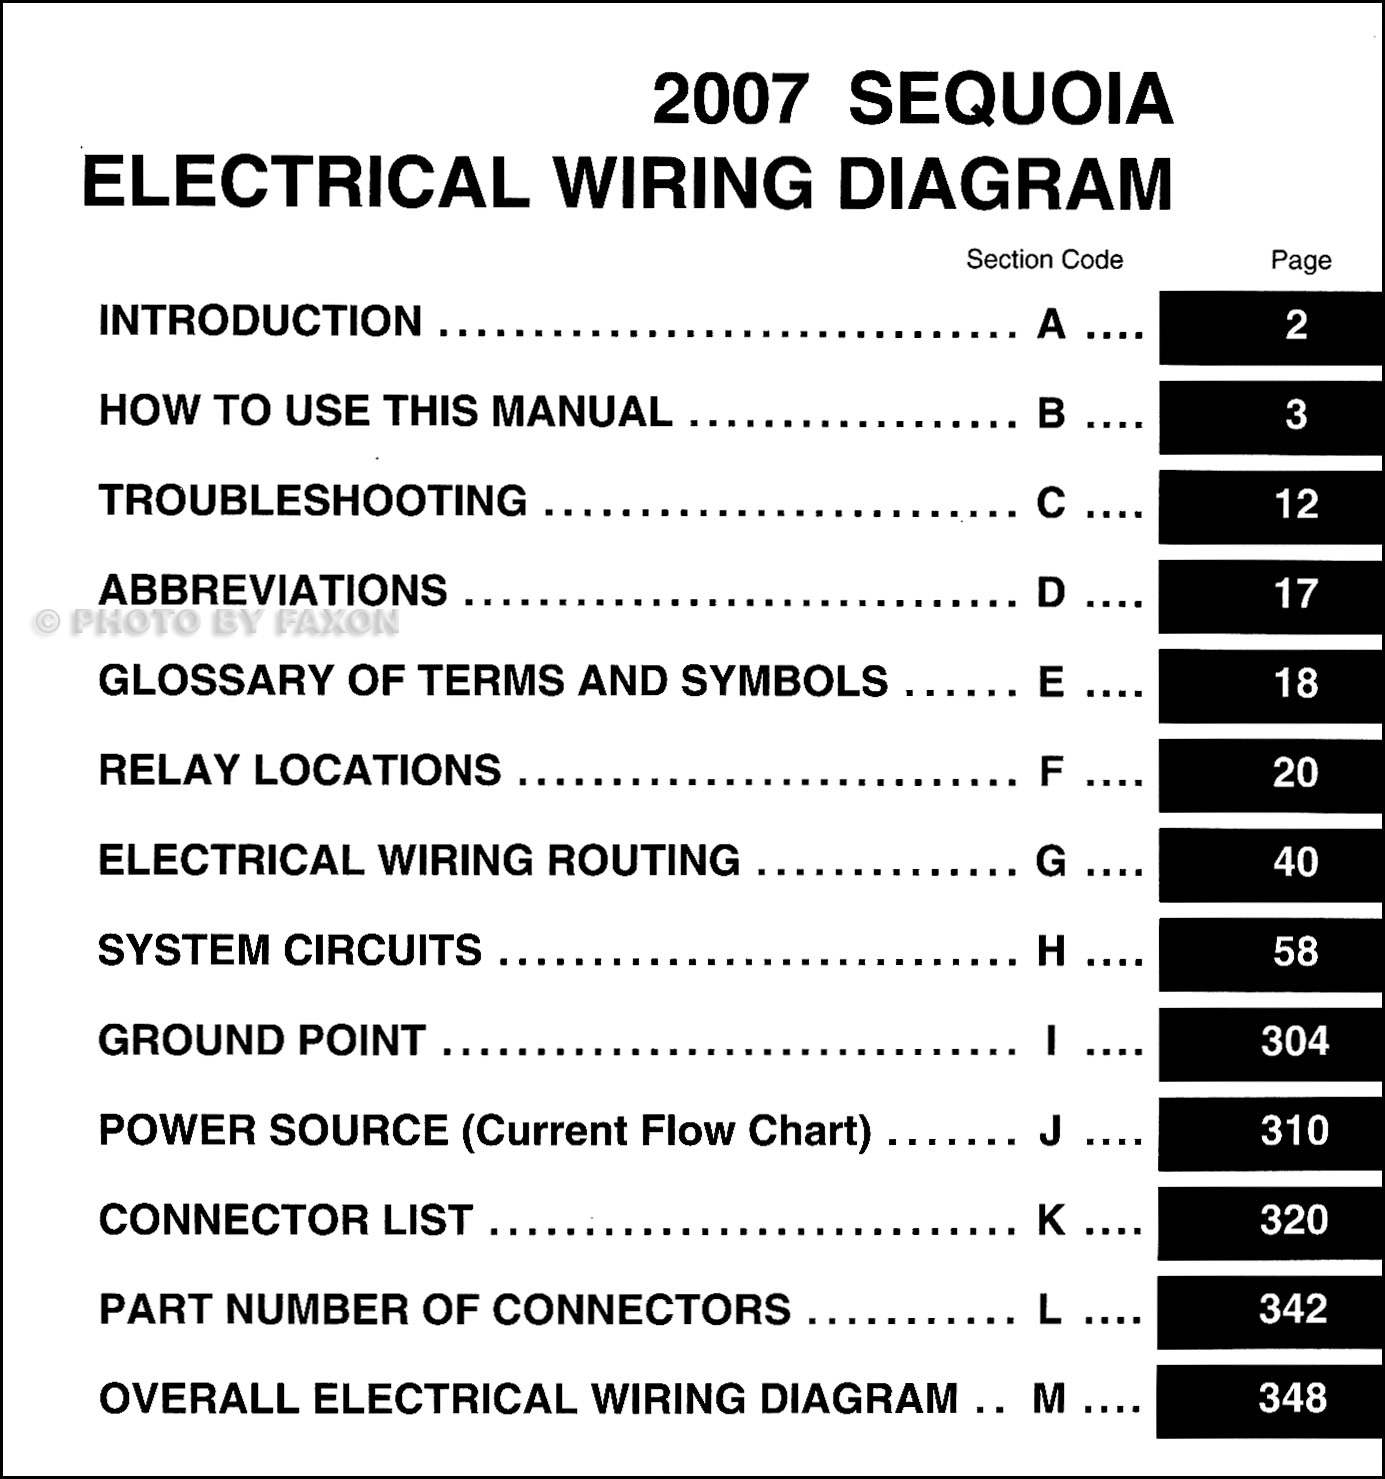 Toyota Sequoia Diagram Reveolution Of Wiring 2001 2007 Manual Original Rh Faxonautoliterature Com Belt